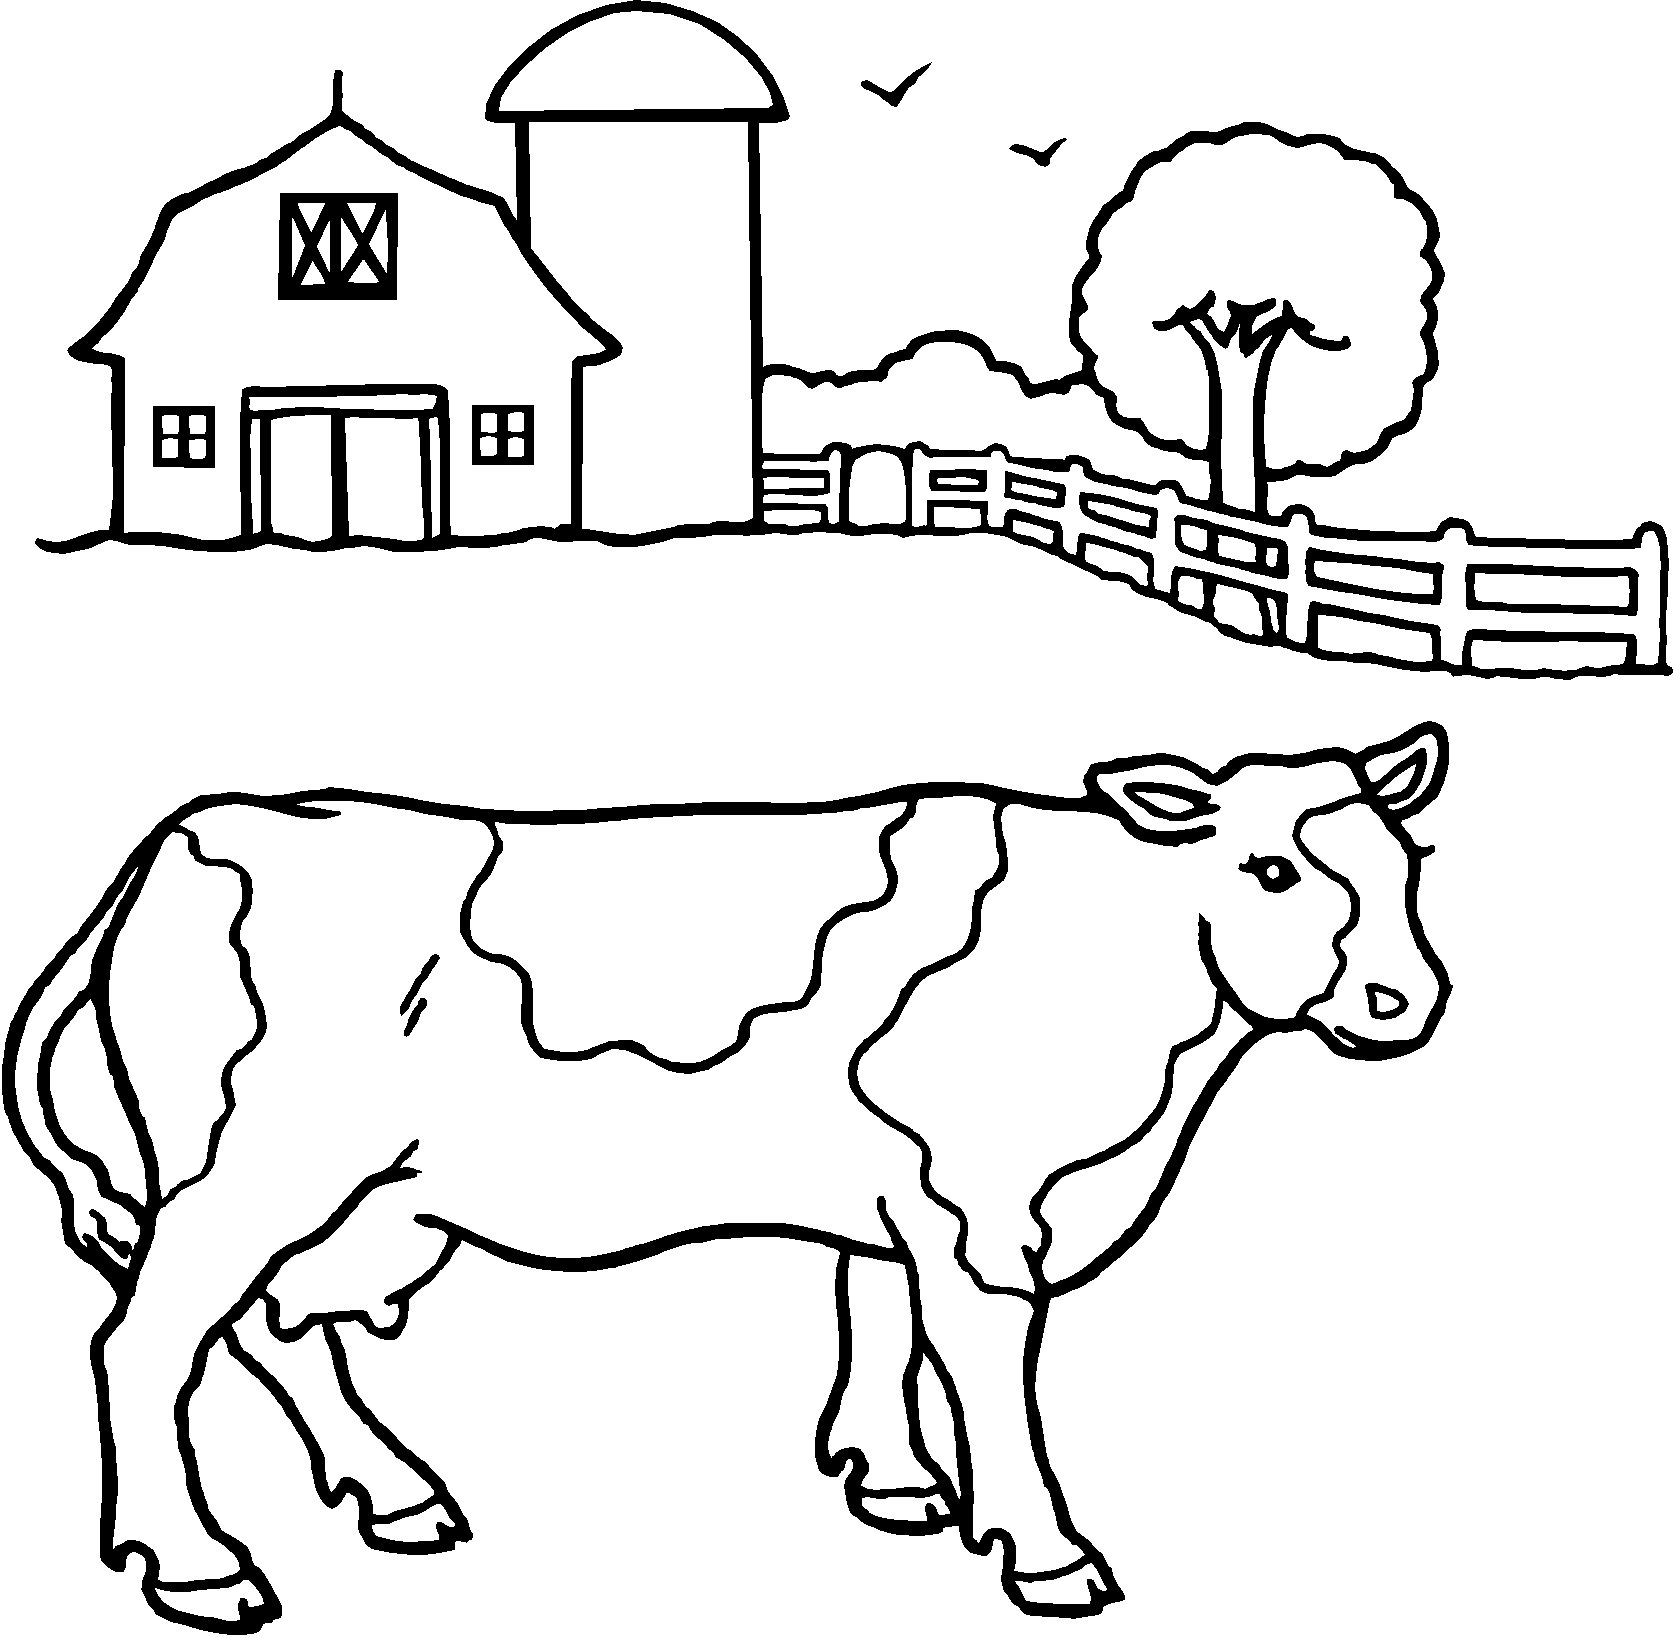 1674x1638 New Dairy Cow Coloring Pages Gallery Free Inside